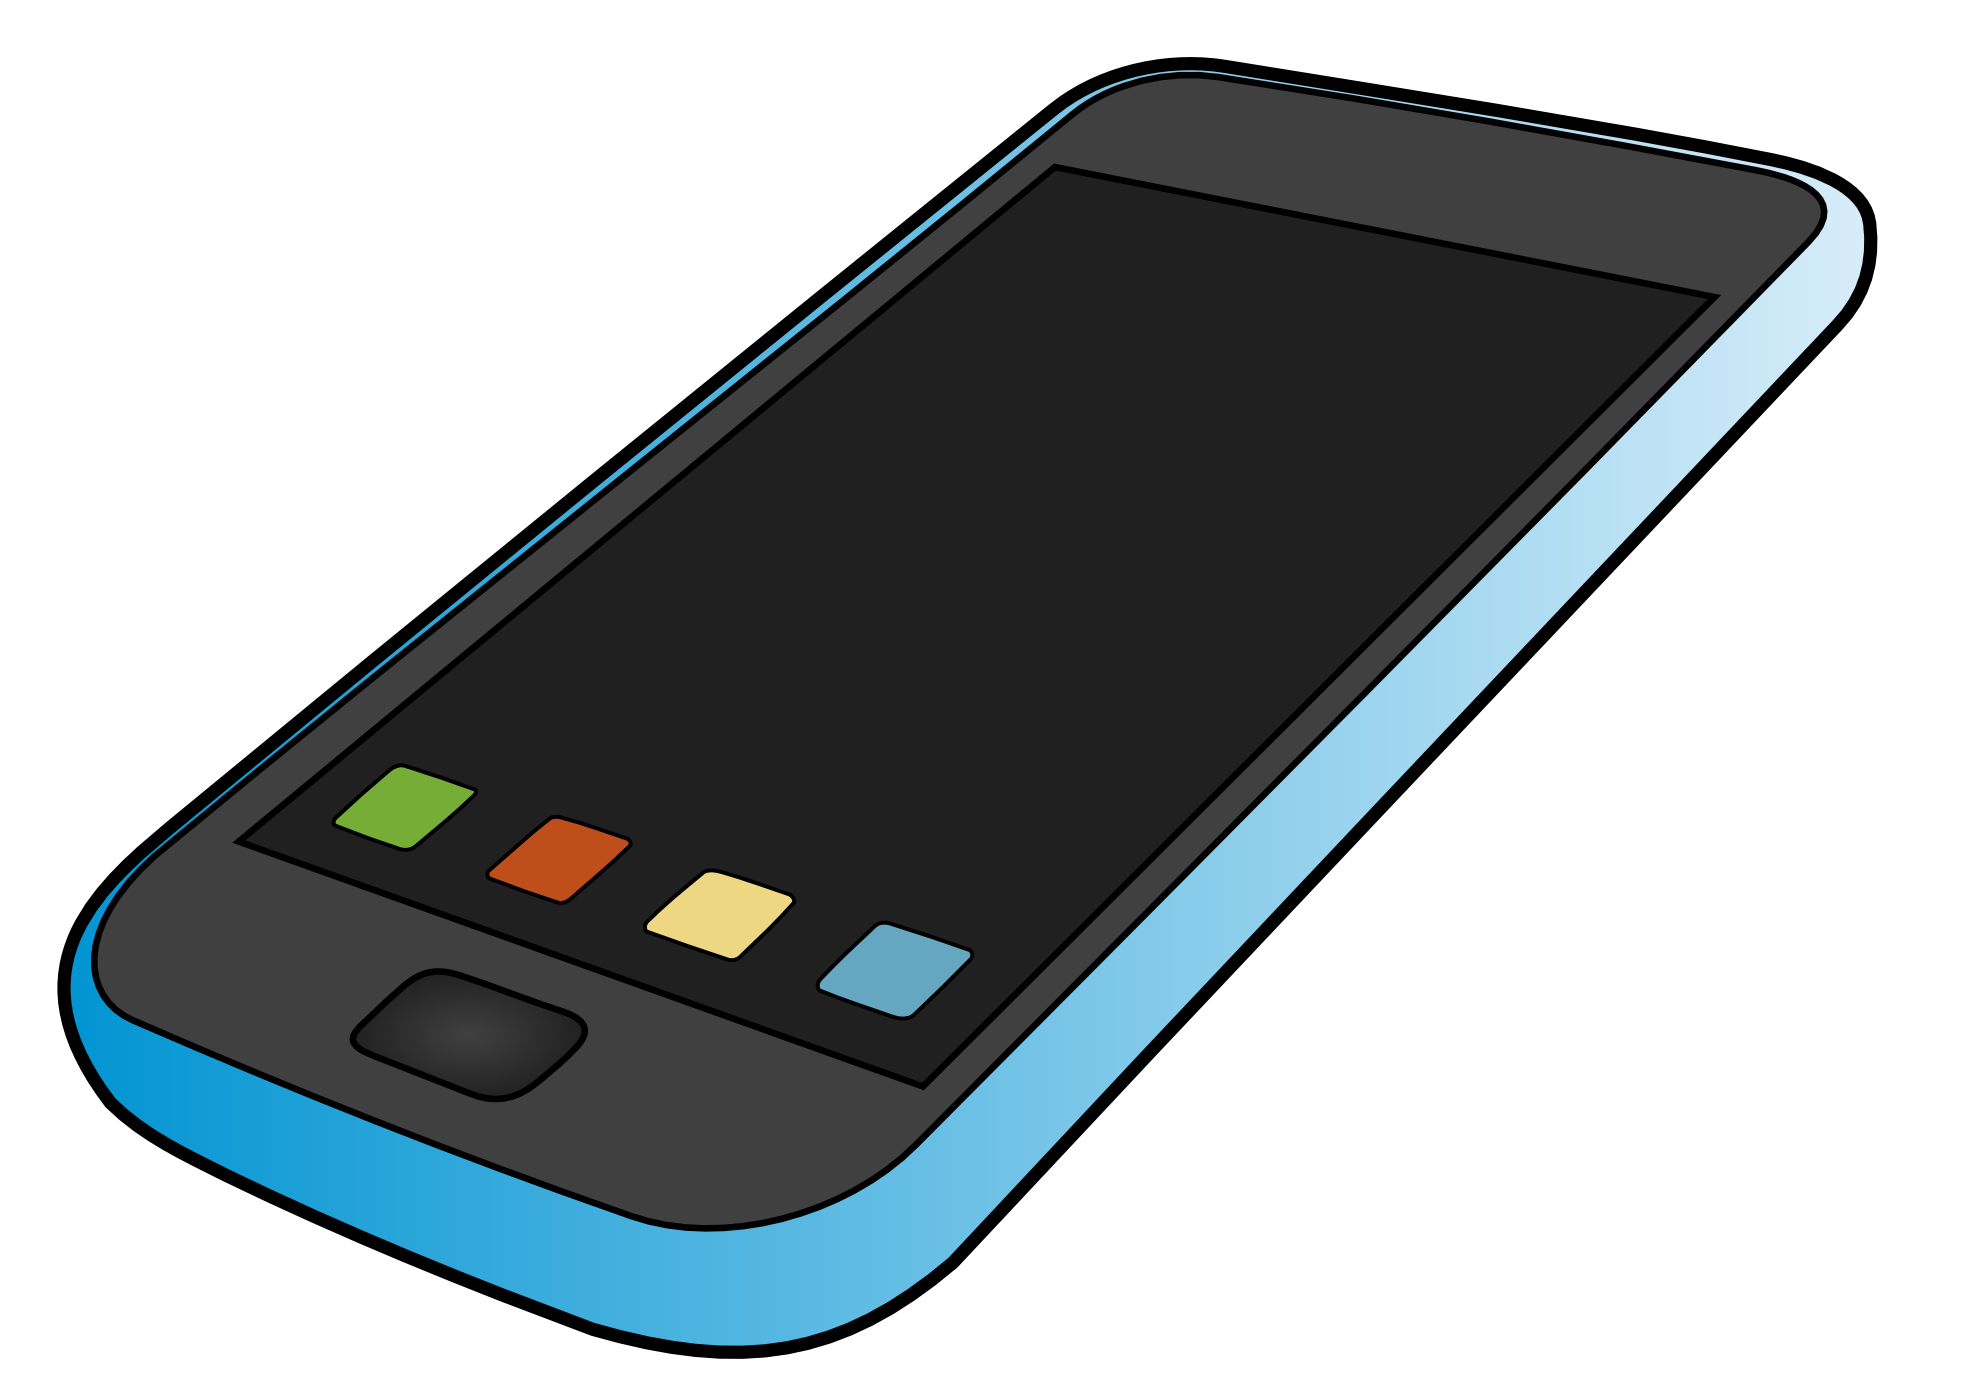 Iphone cell phone clipart free clipart images 2